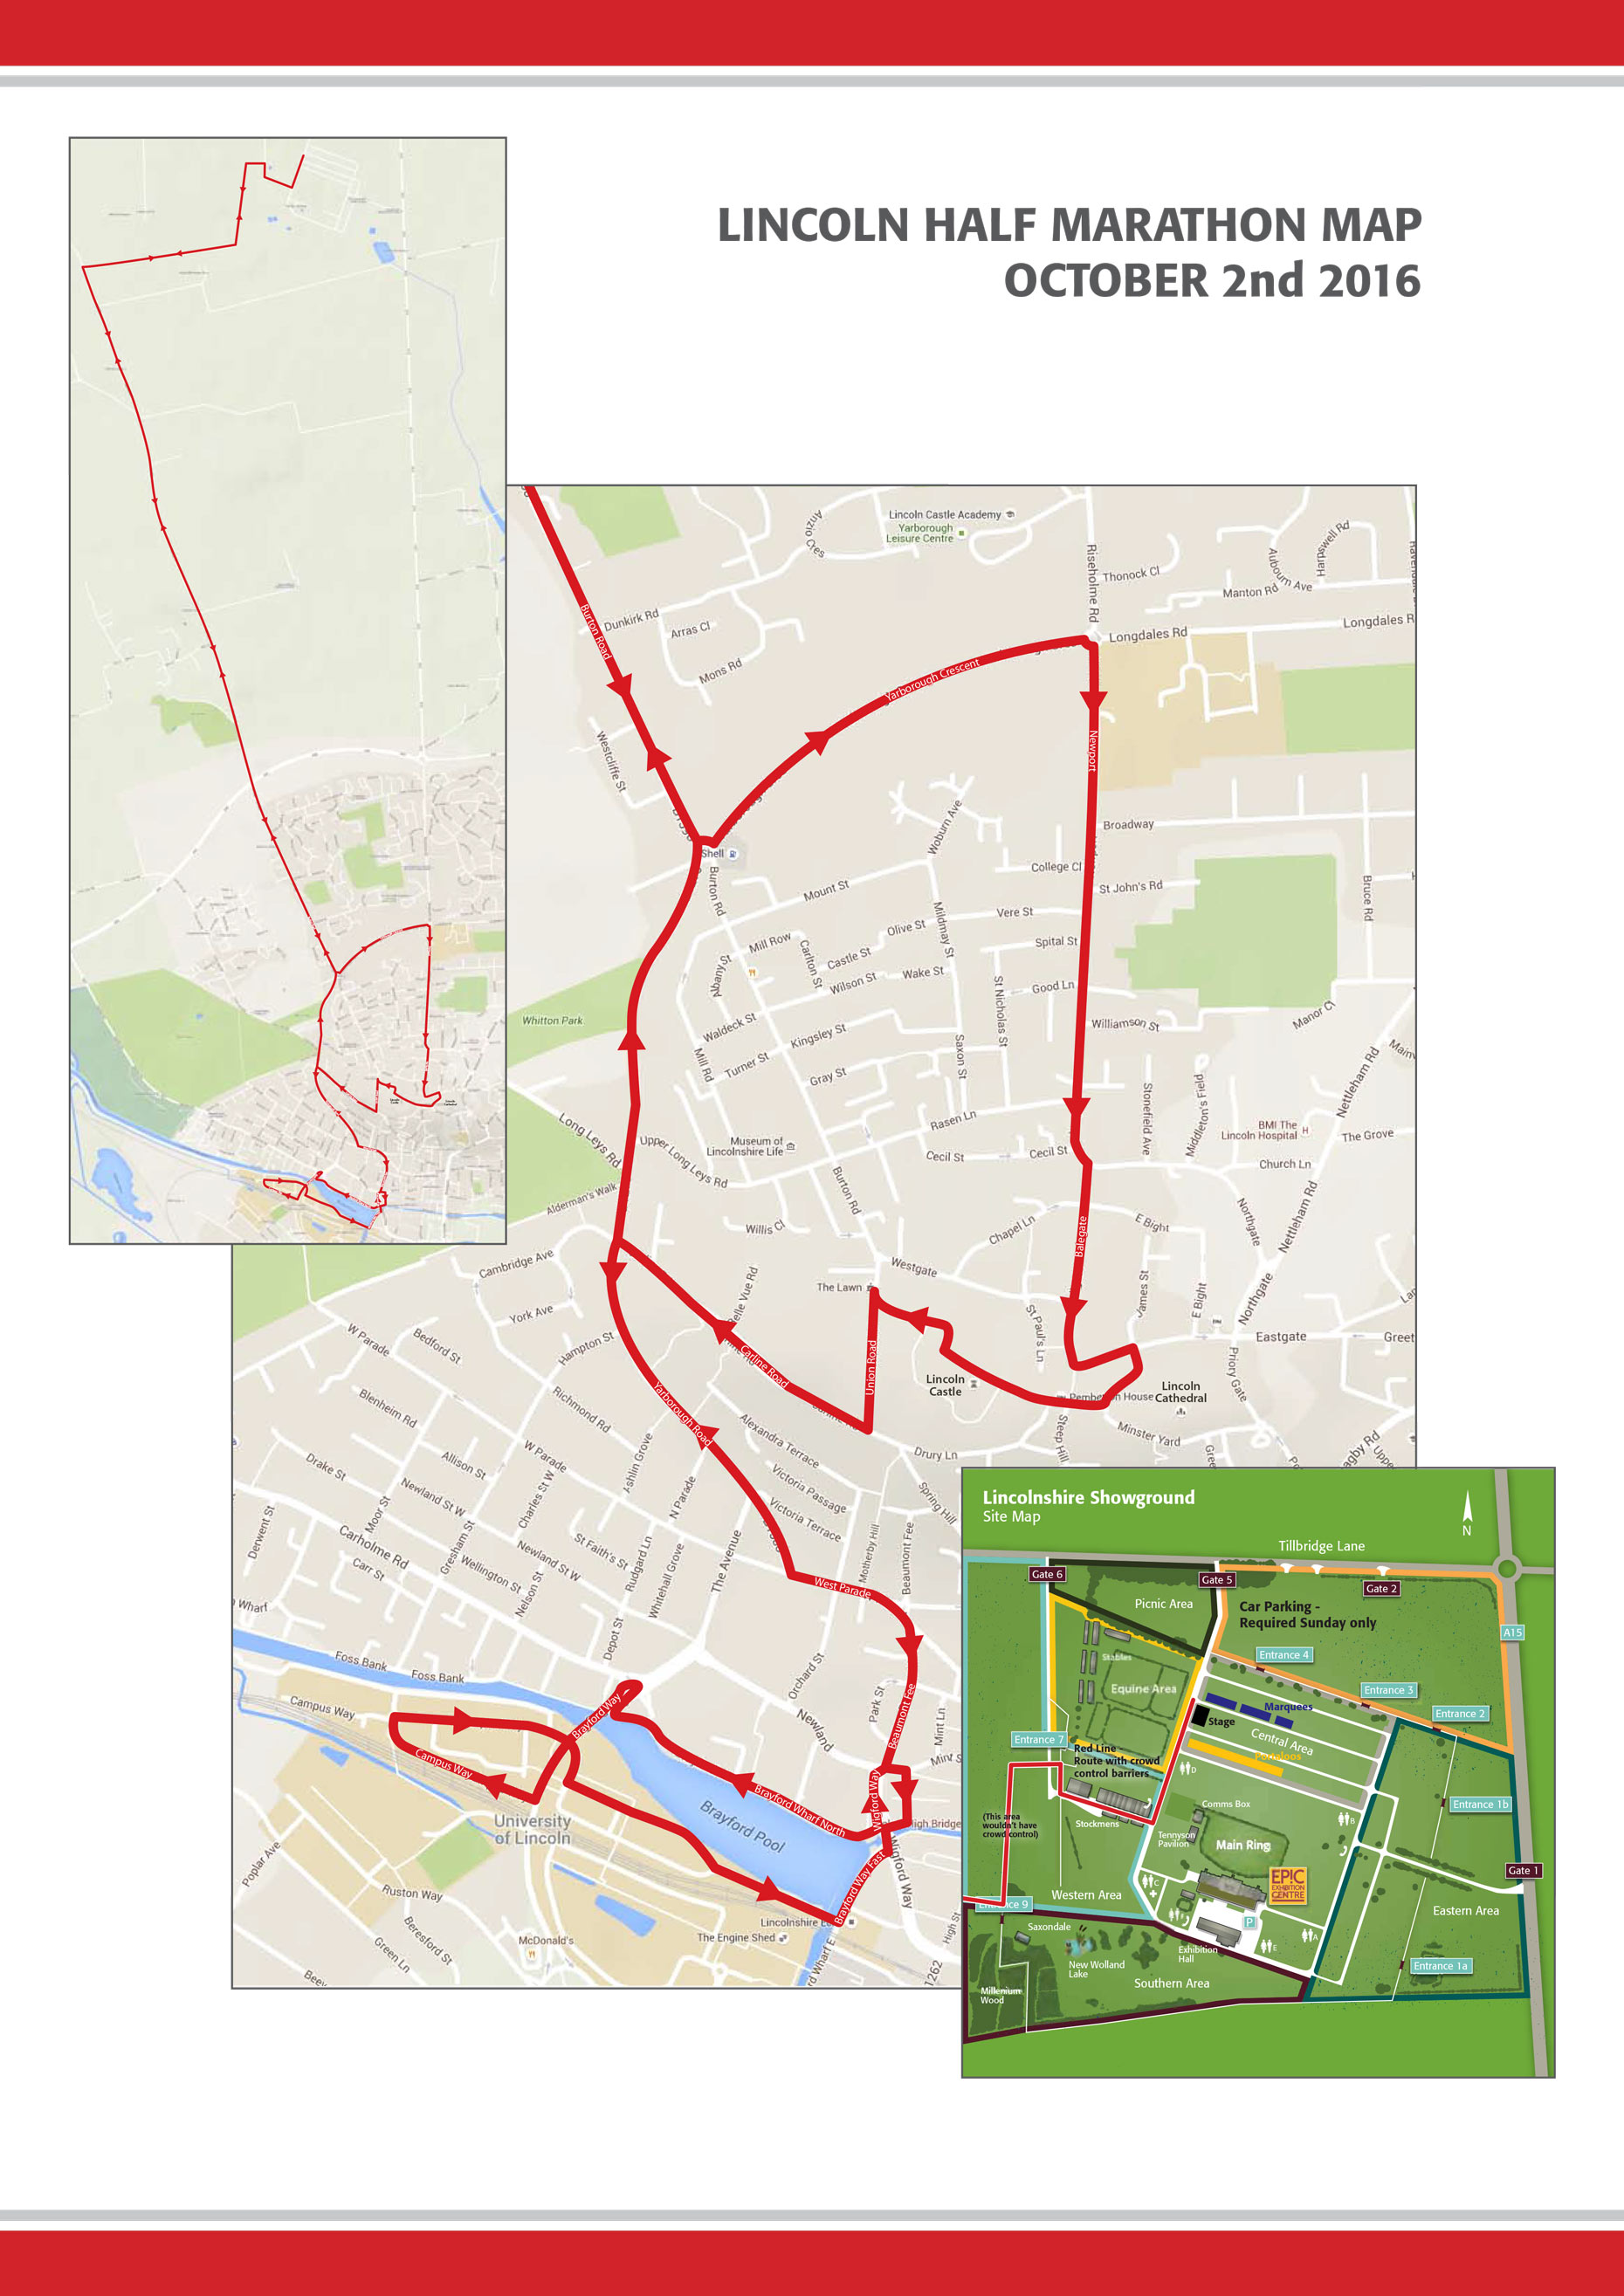 The 13.1 mile route ffromt eh Lincolnshire Showground